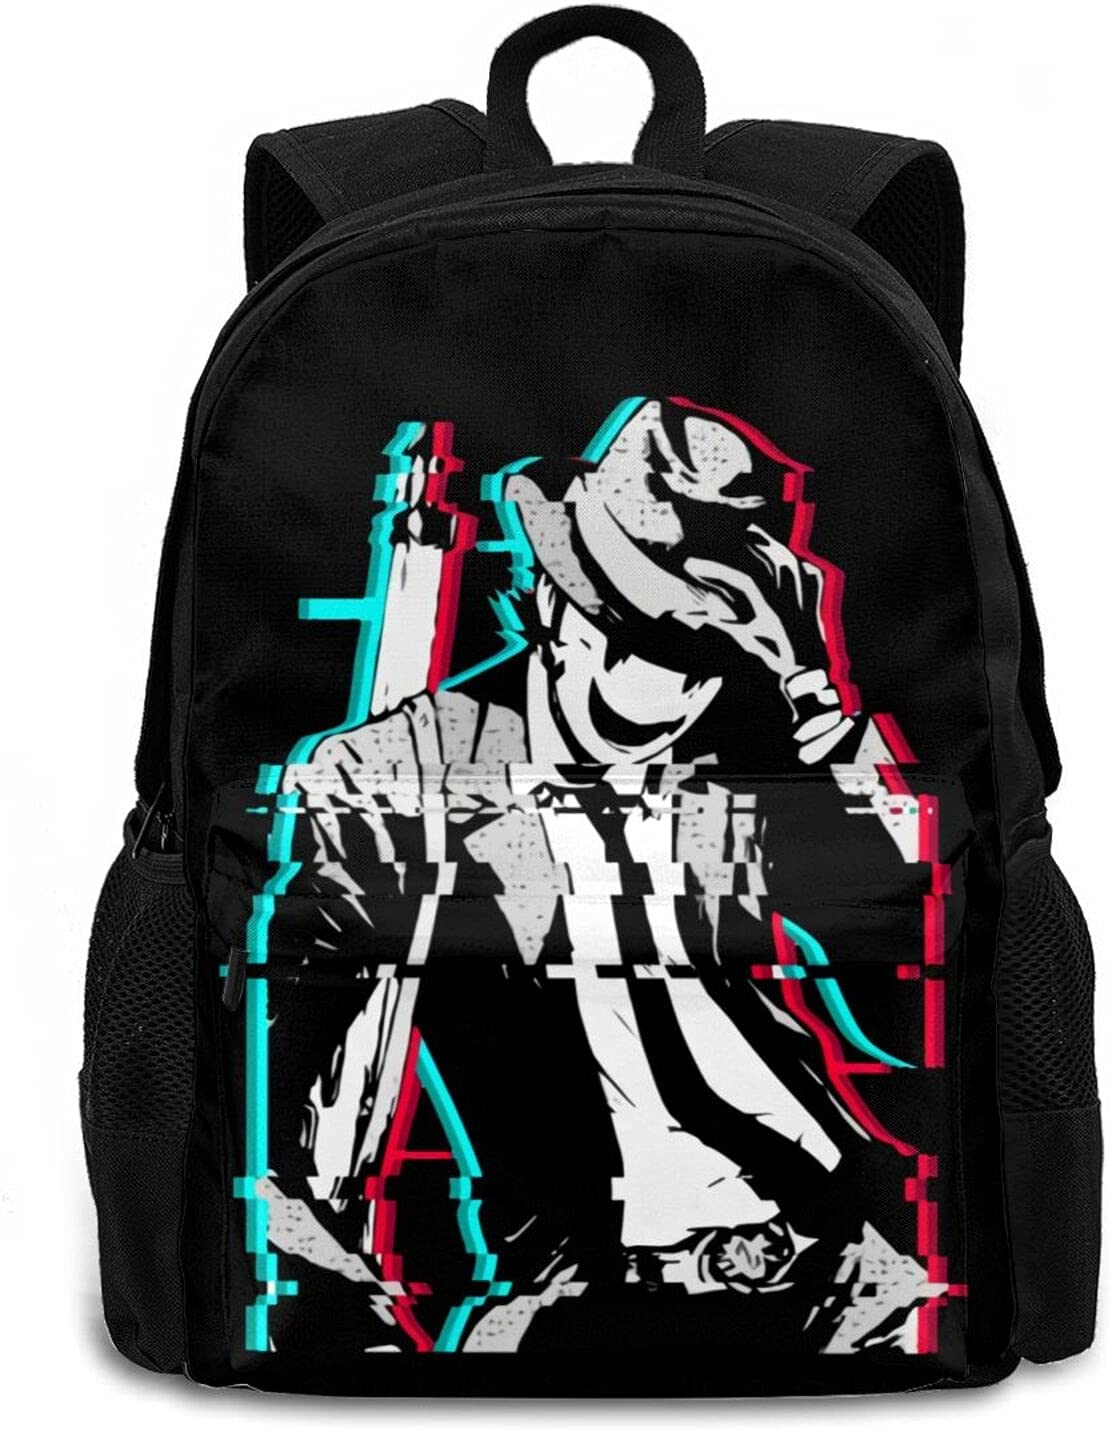 High-Rise Invasion Backpack fun  gift Travel Multi-Function Purchase Laptop